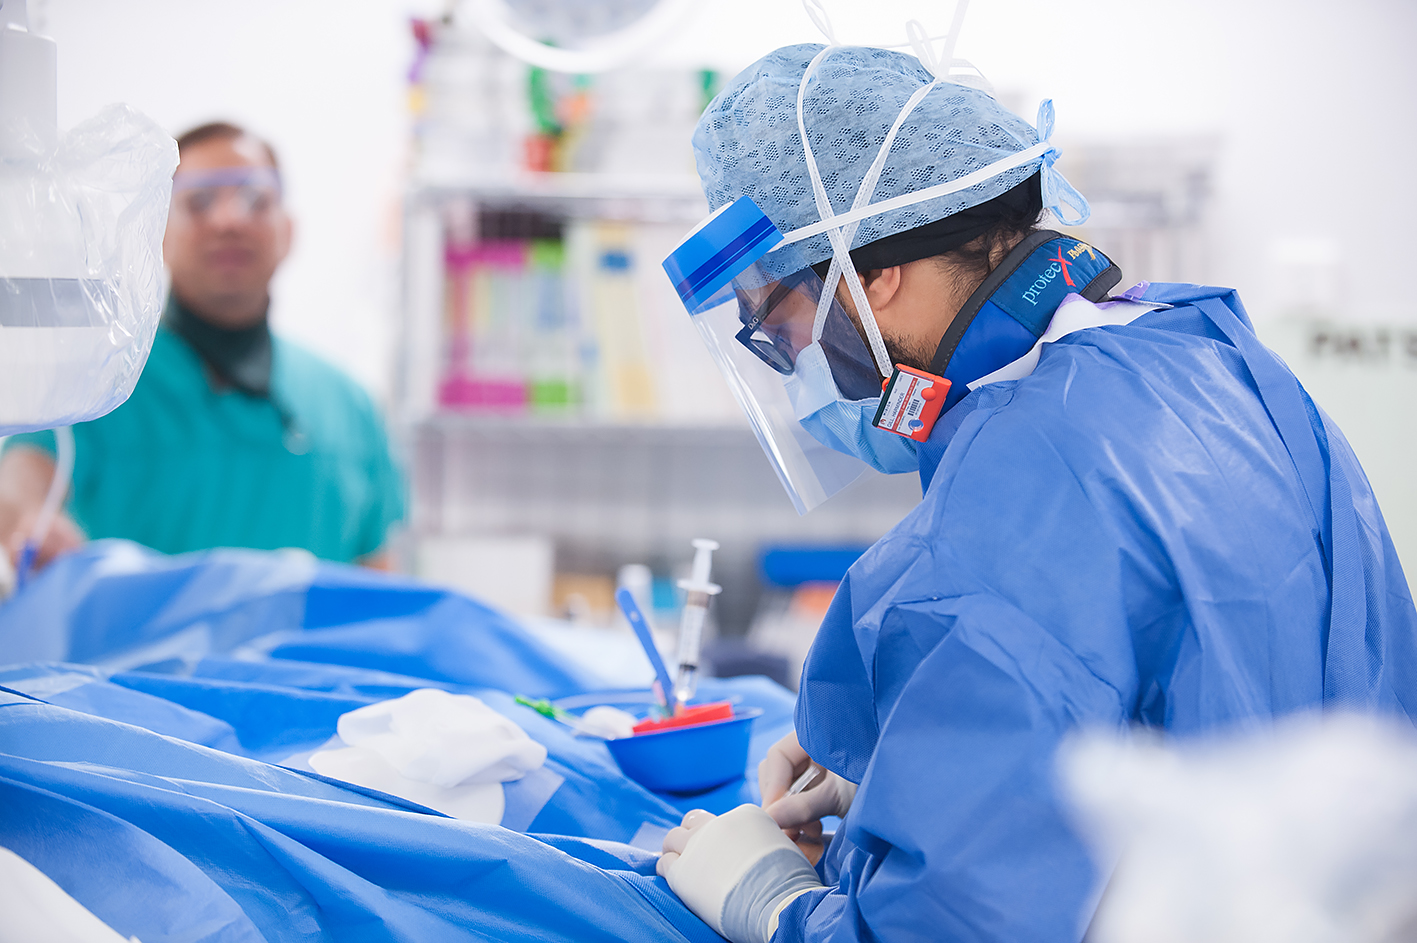 Surgeon performing surgery on patient in Hospital